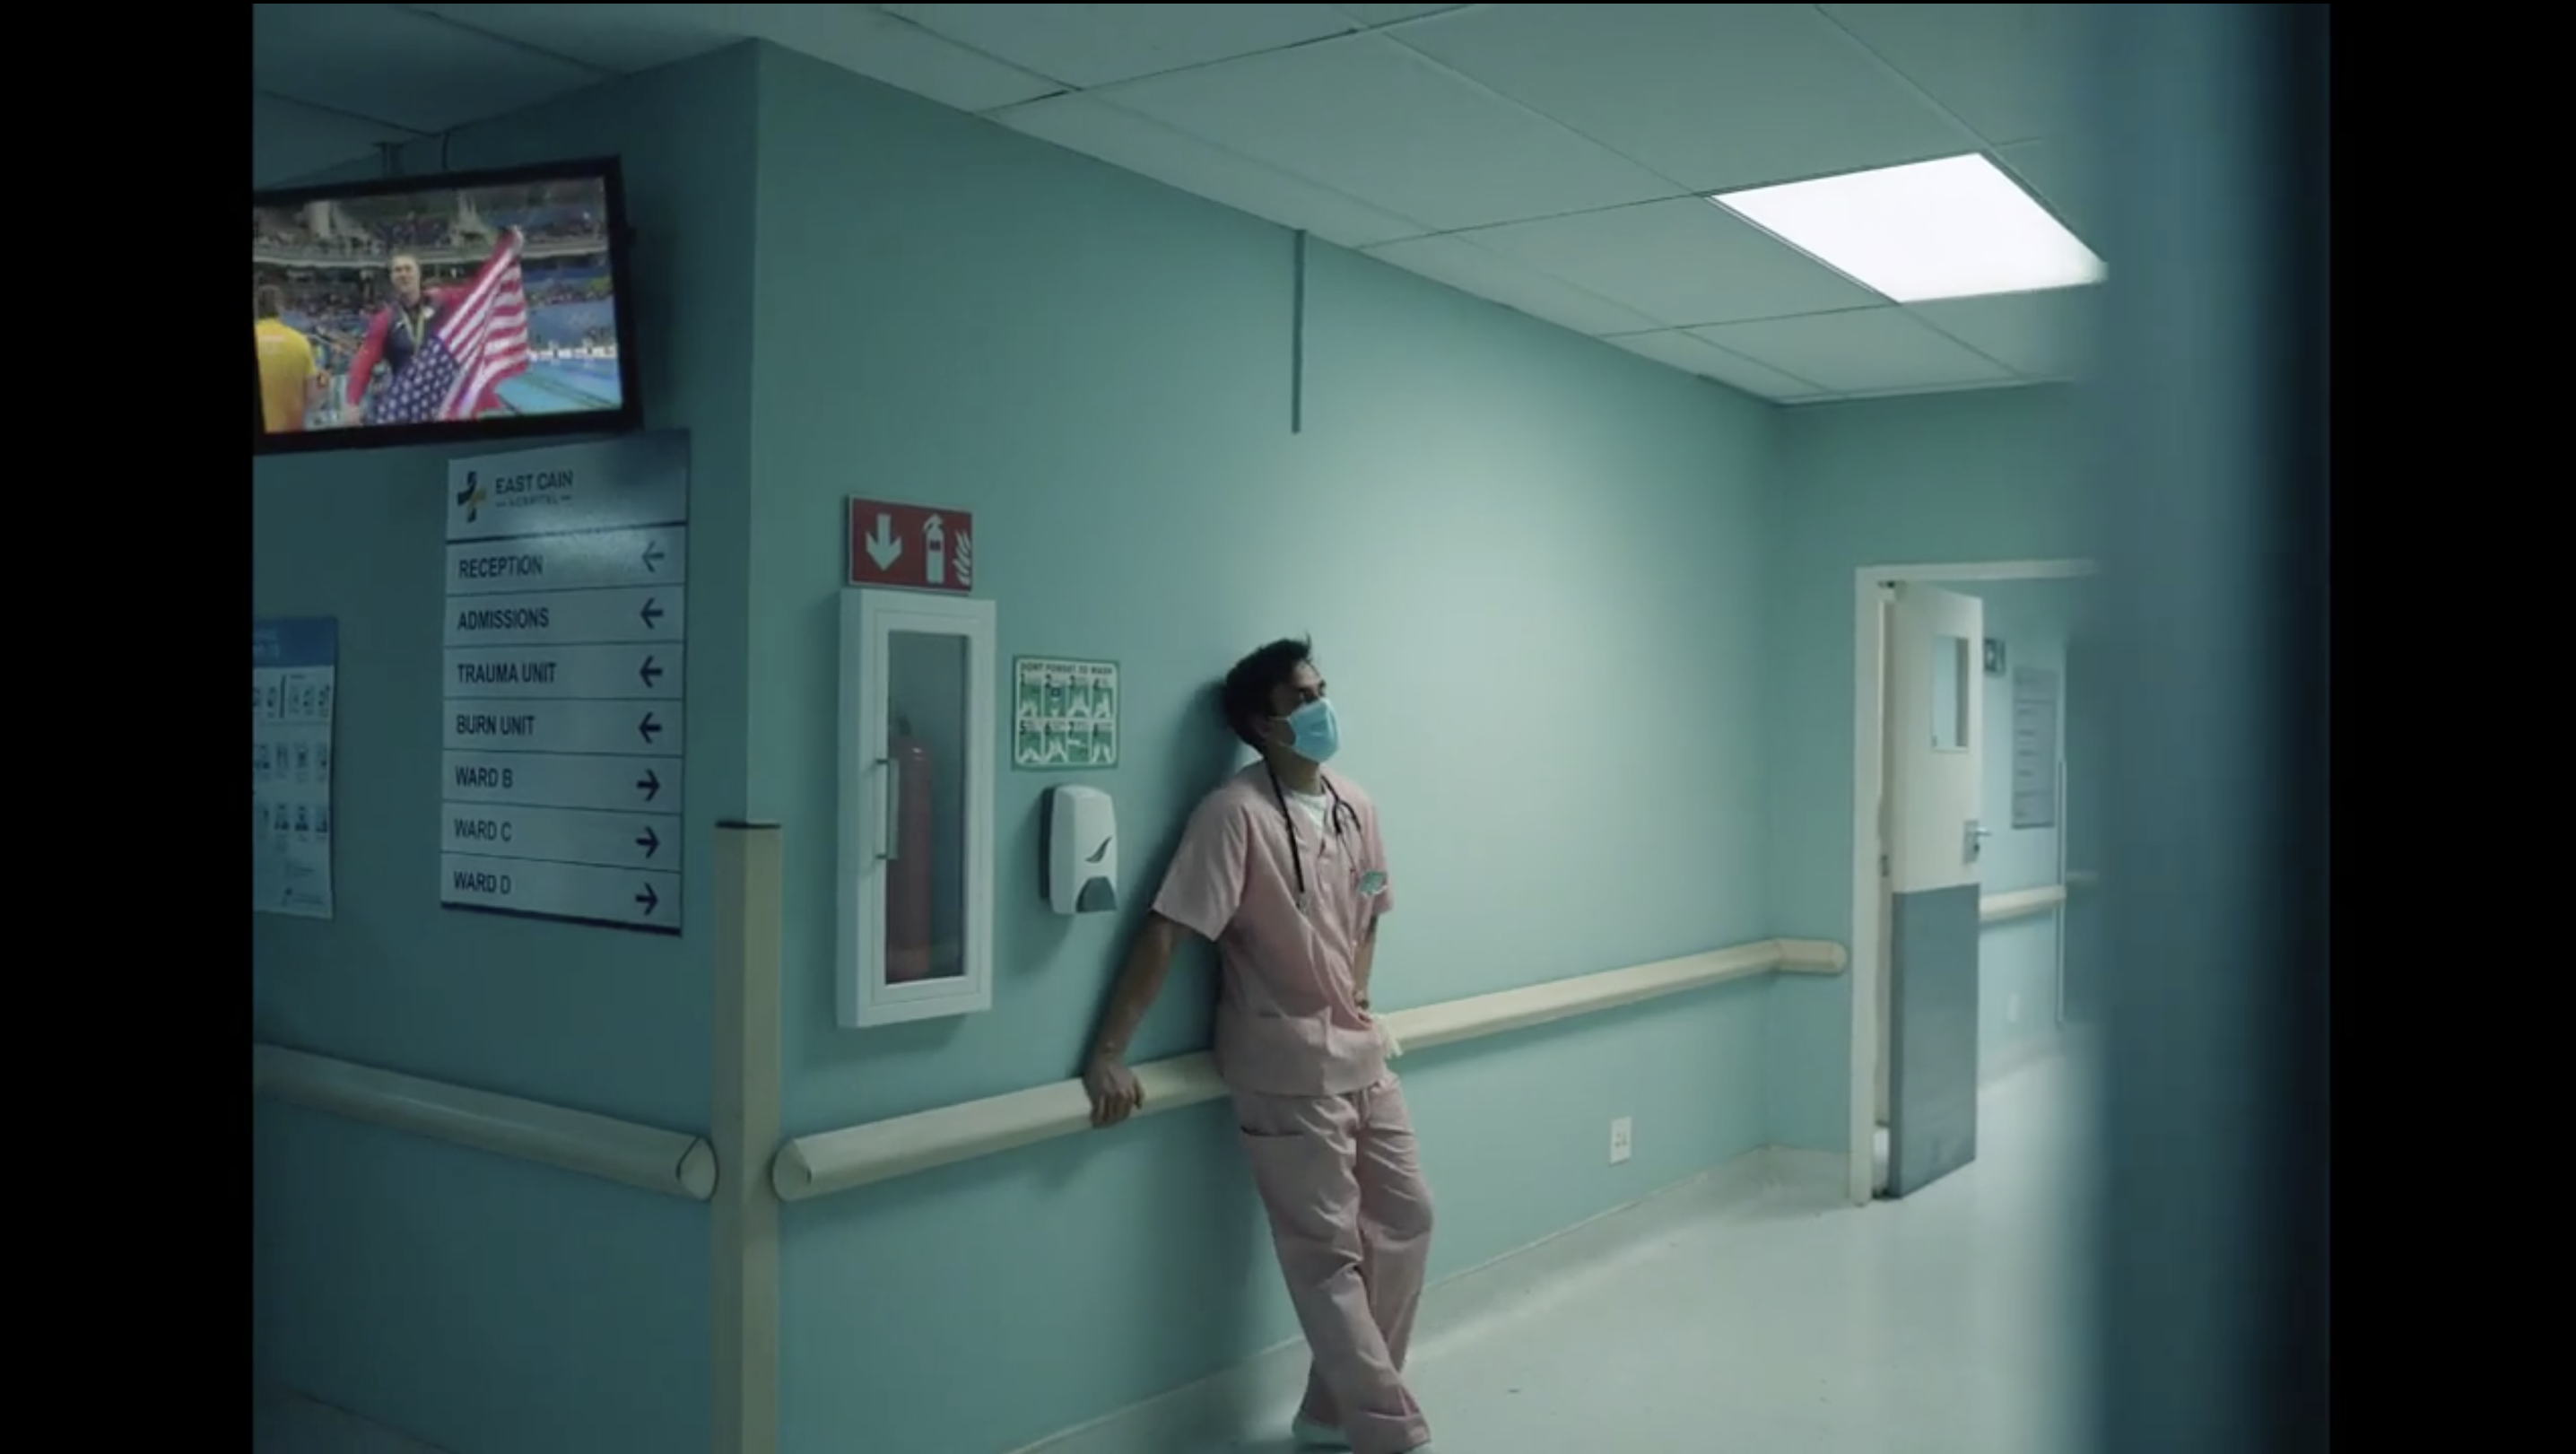 A doctor leans against a hospital wall as Olympics play in the background